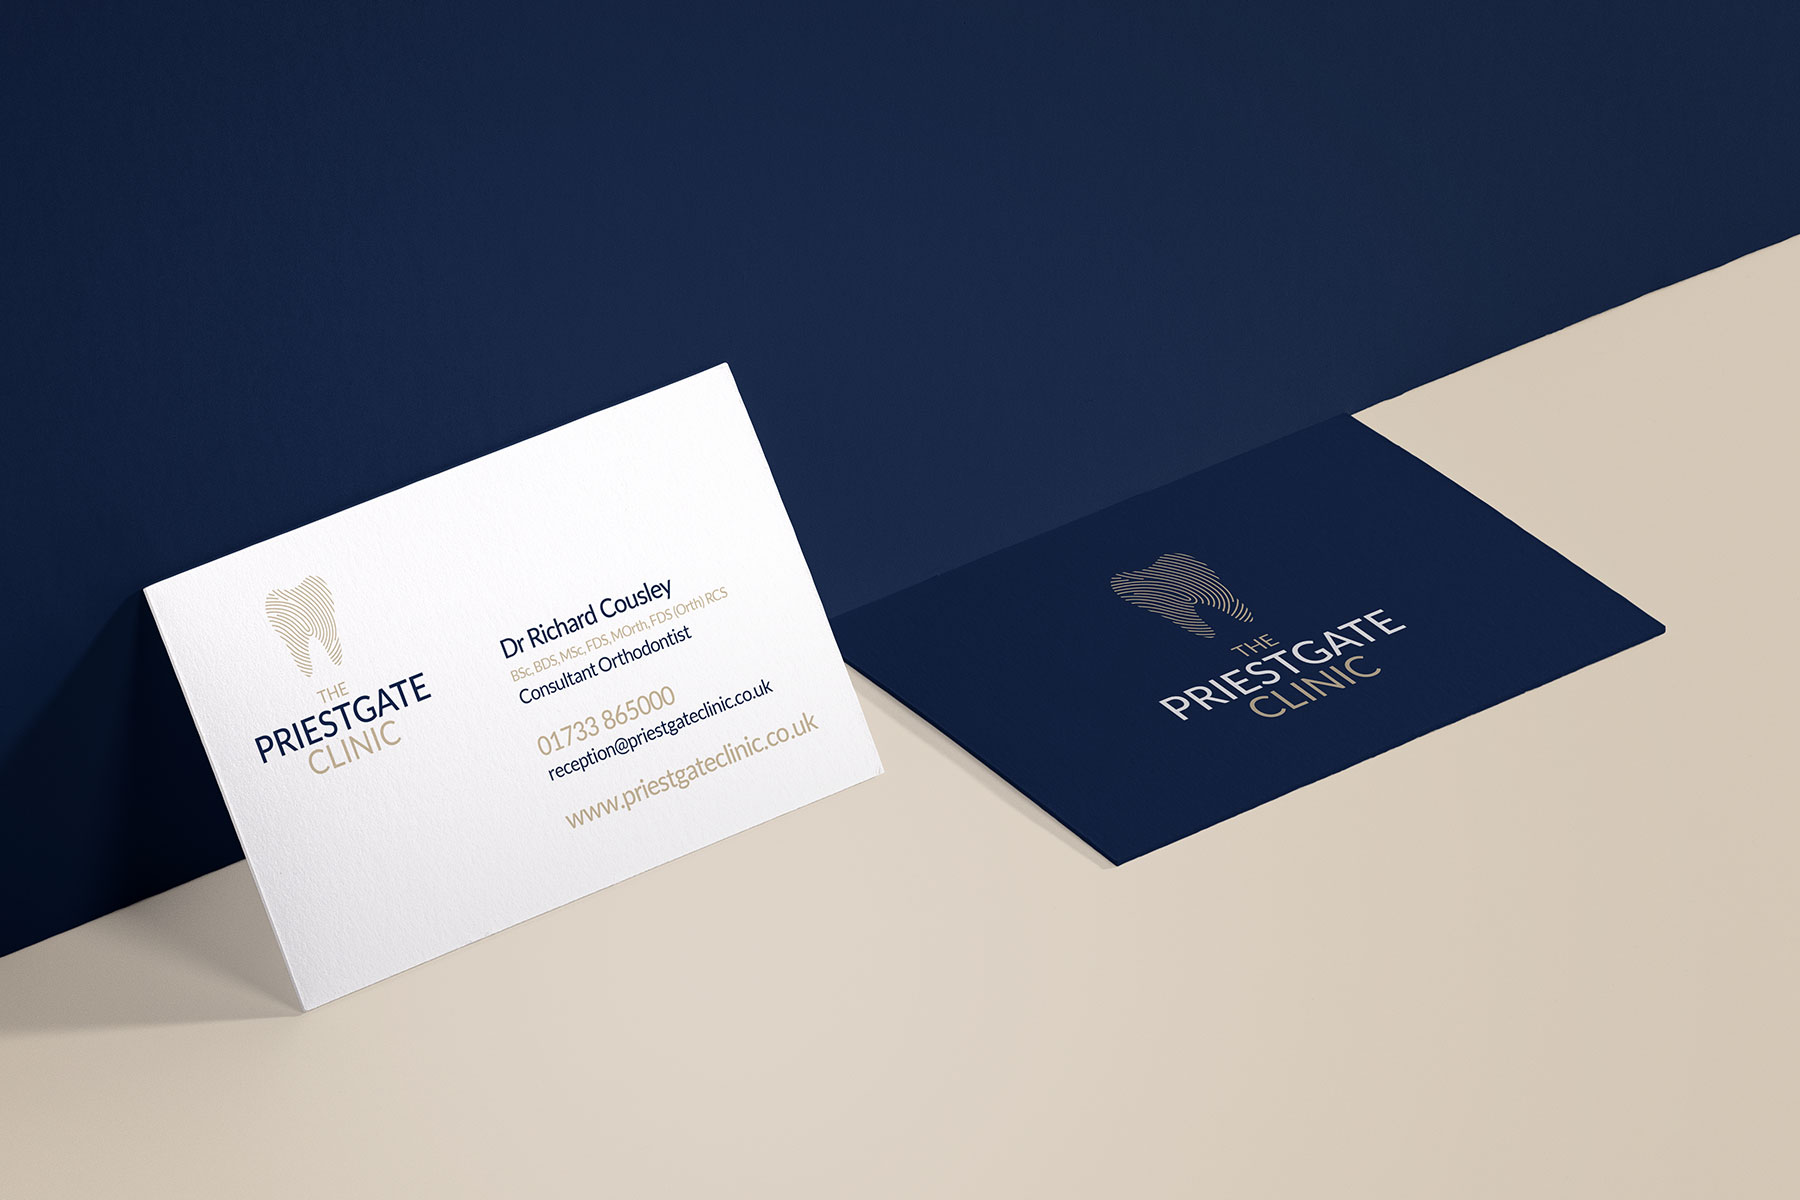 Business cards for Priestgate Clinic branding